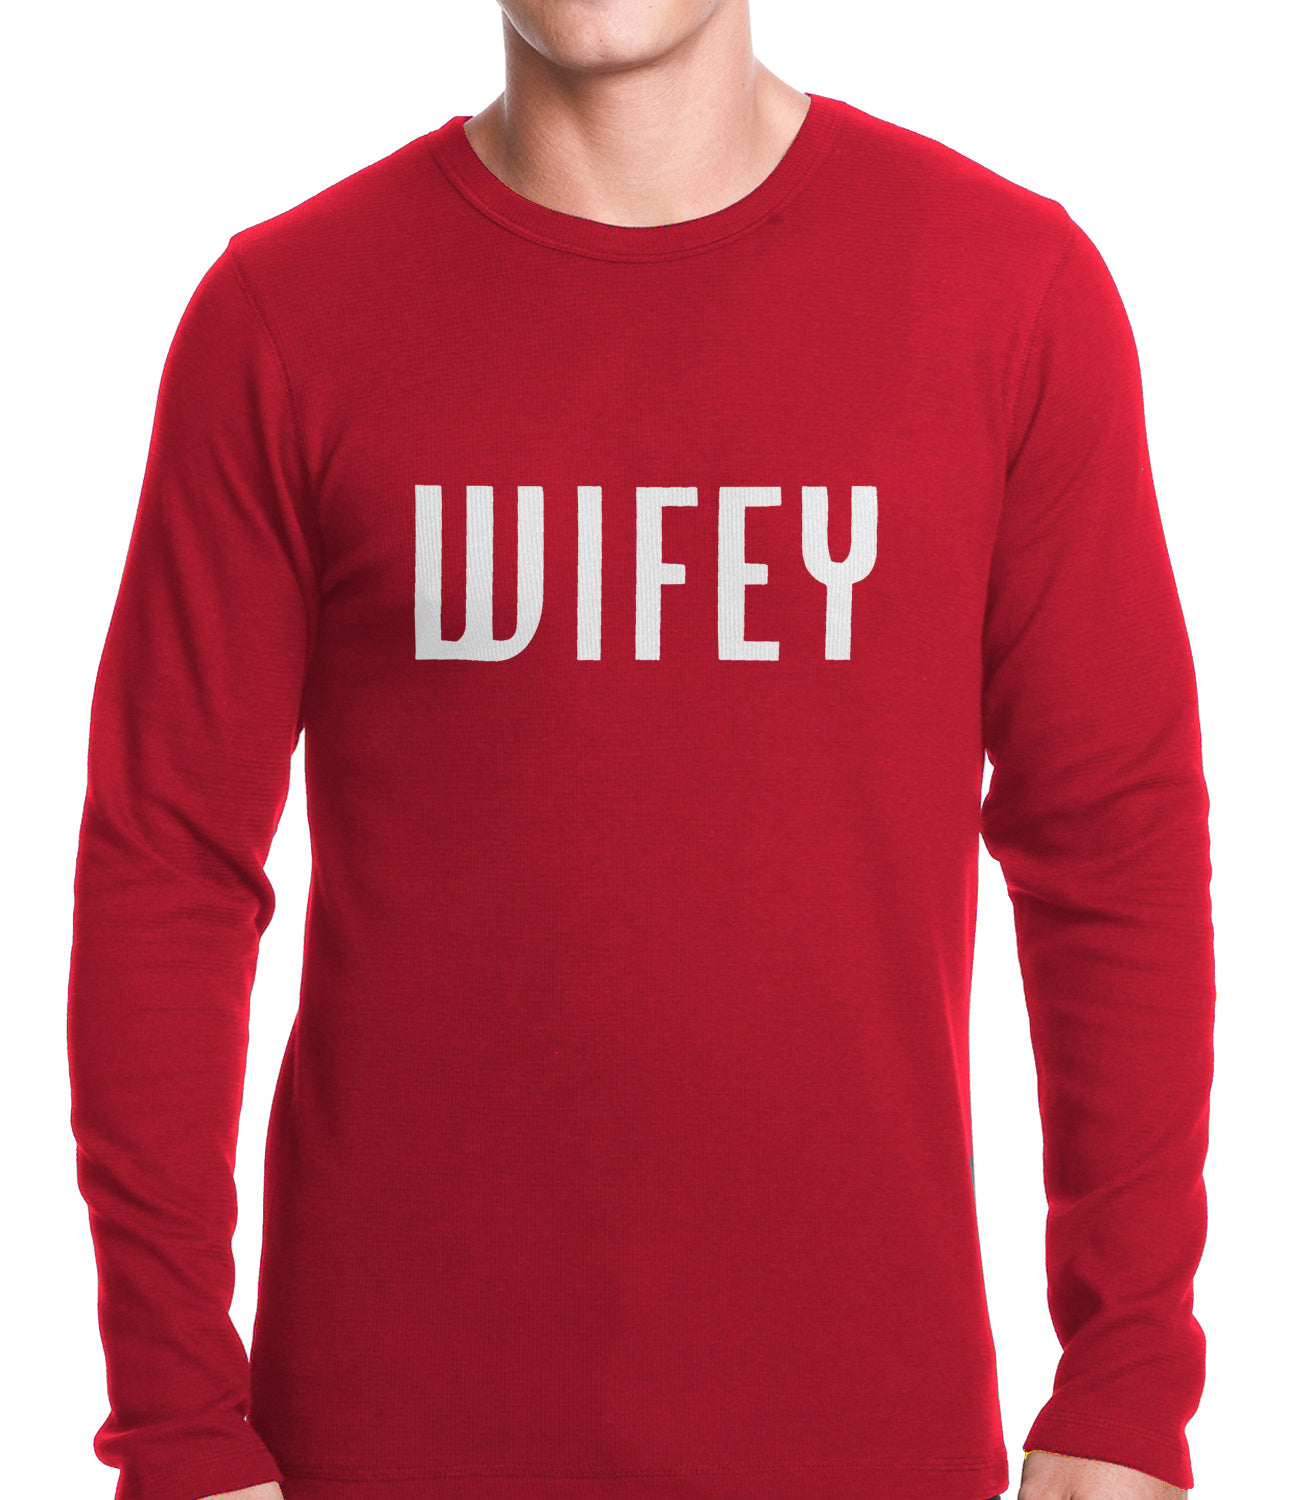 Wifey Thermal Shirt